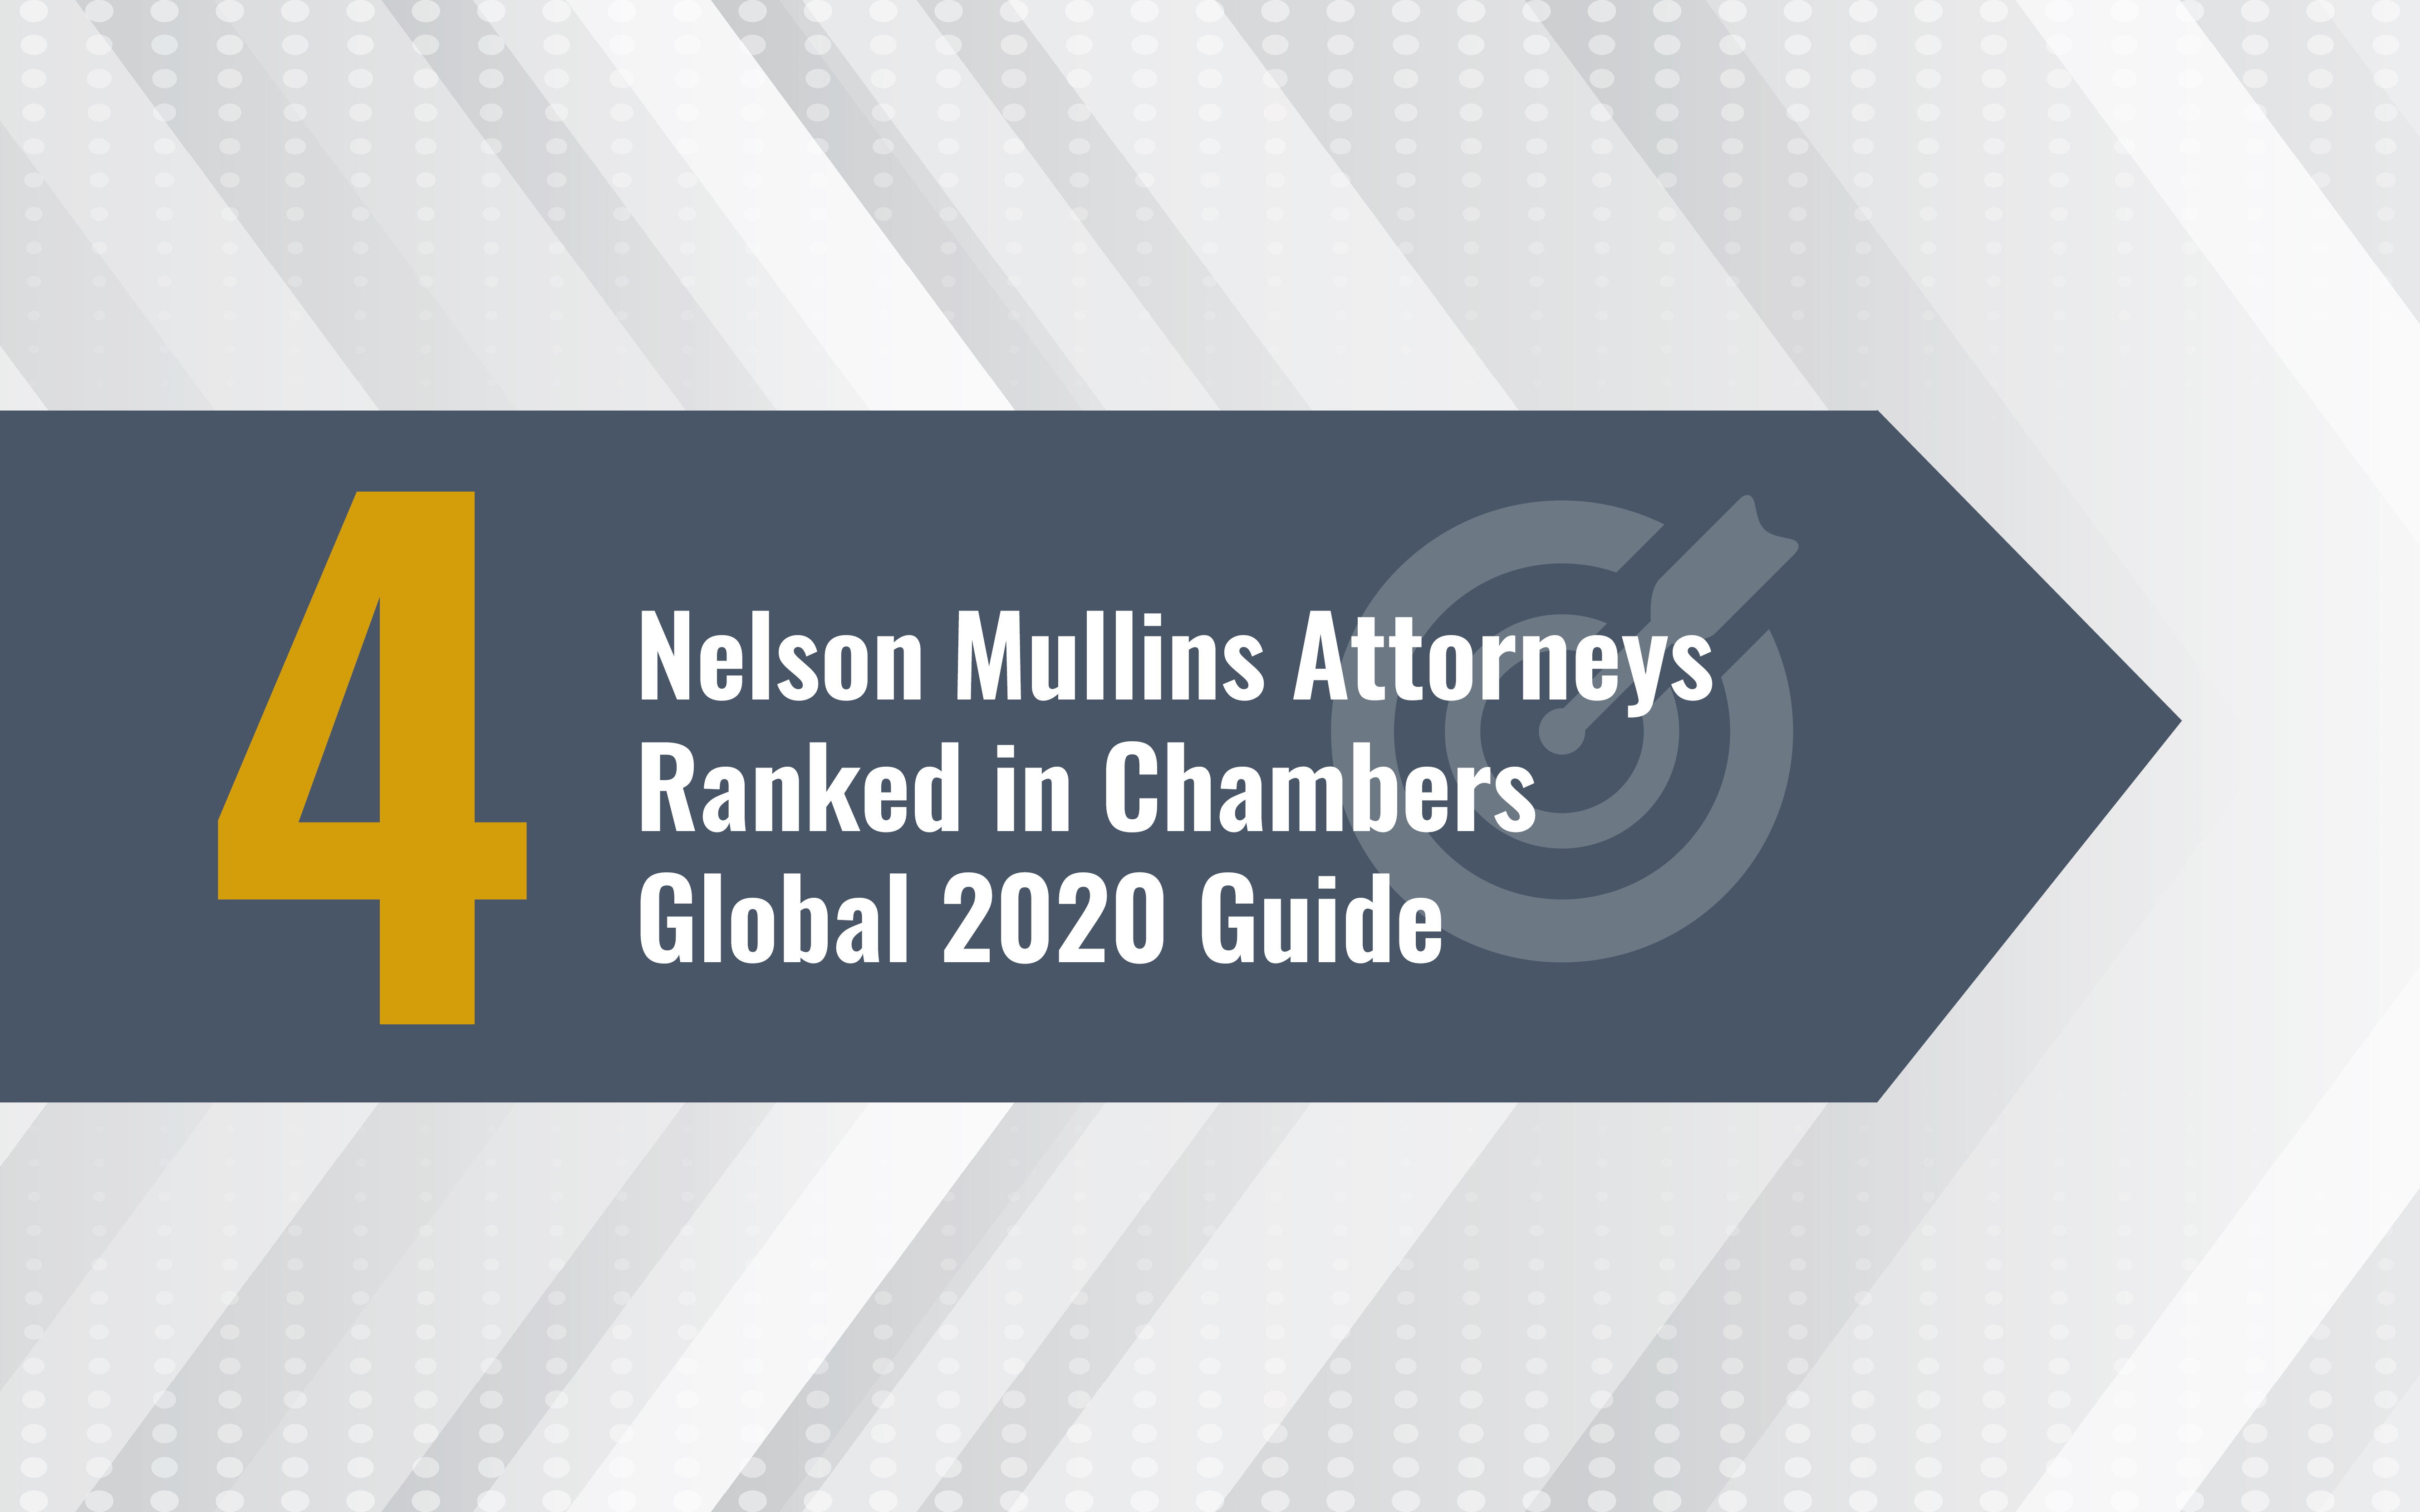 Four Nelson Mullins Attorneys Ranked in Chambers Global 2020 Guide